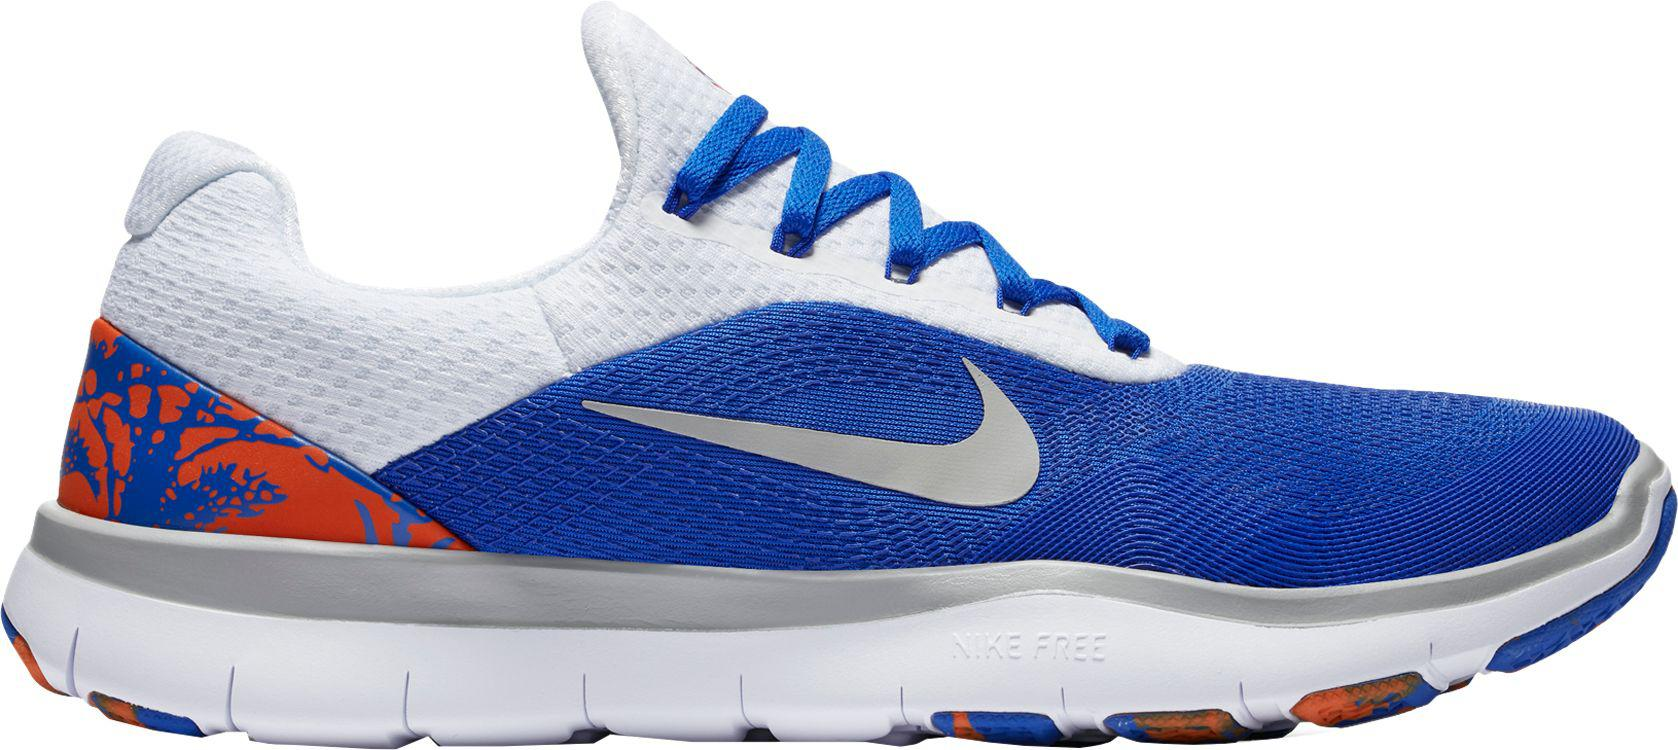 cf8f61f4ce3e ... official nike blue free trainer v7 week zero florida edition training  shoes for men lyst a6a38